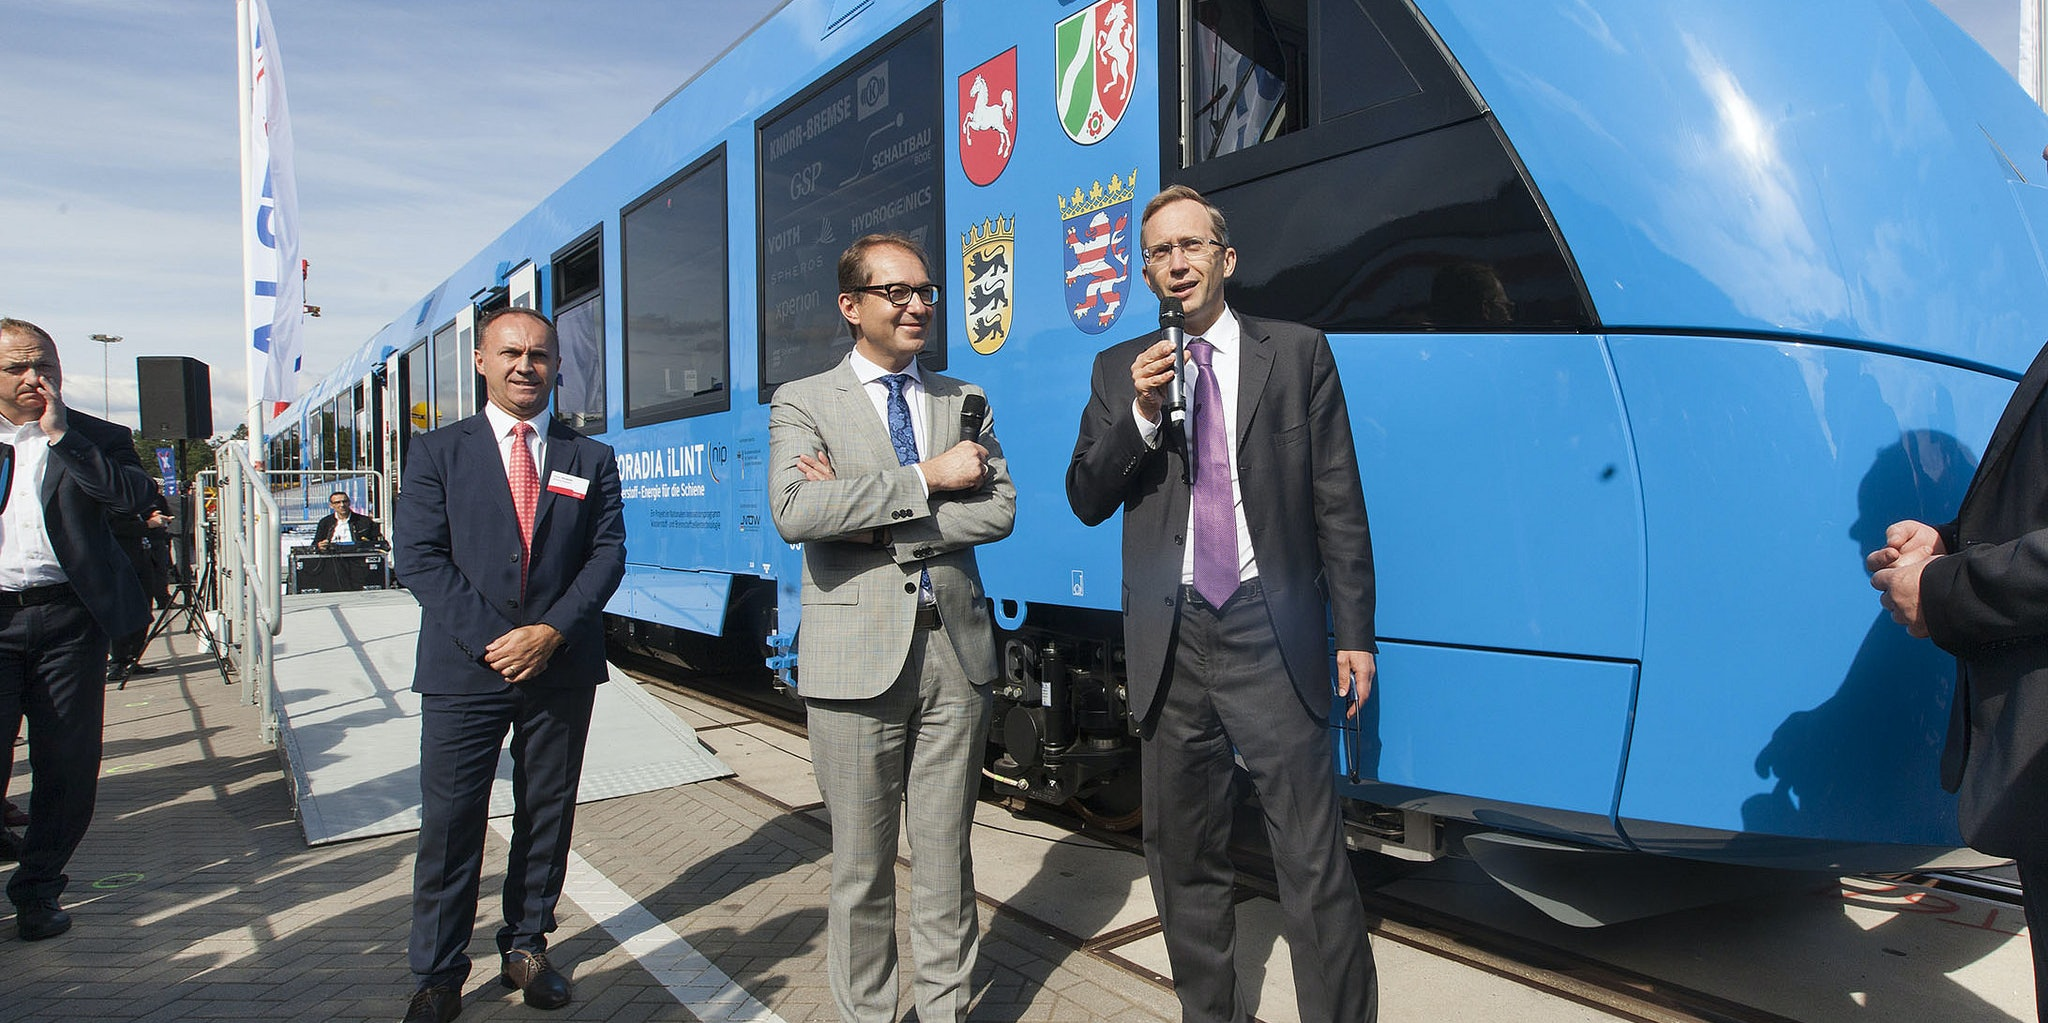 Germany Plans World's First Hydrogen-Powered Train for 2017